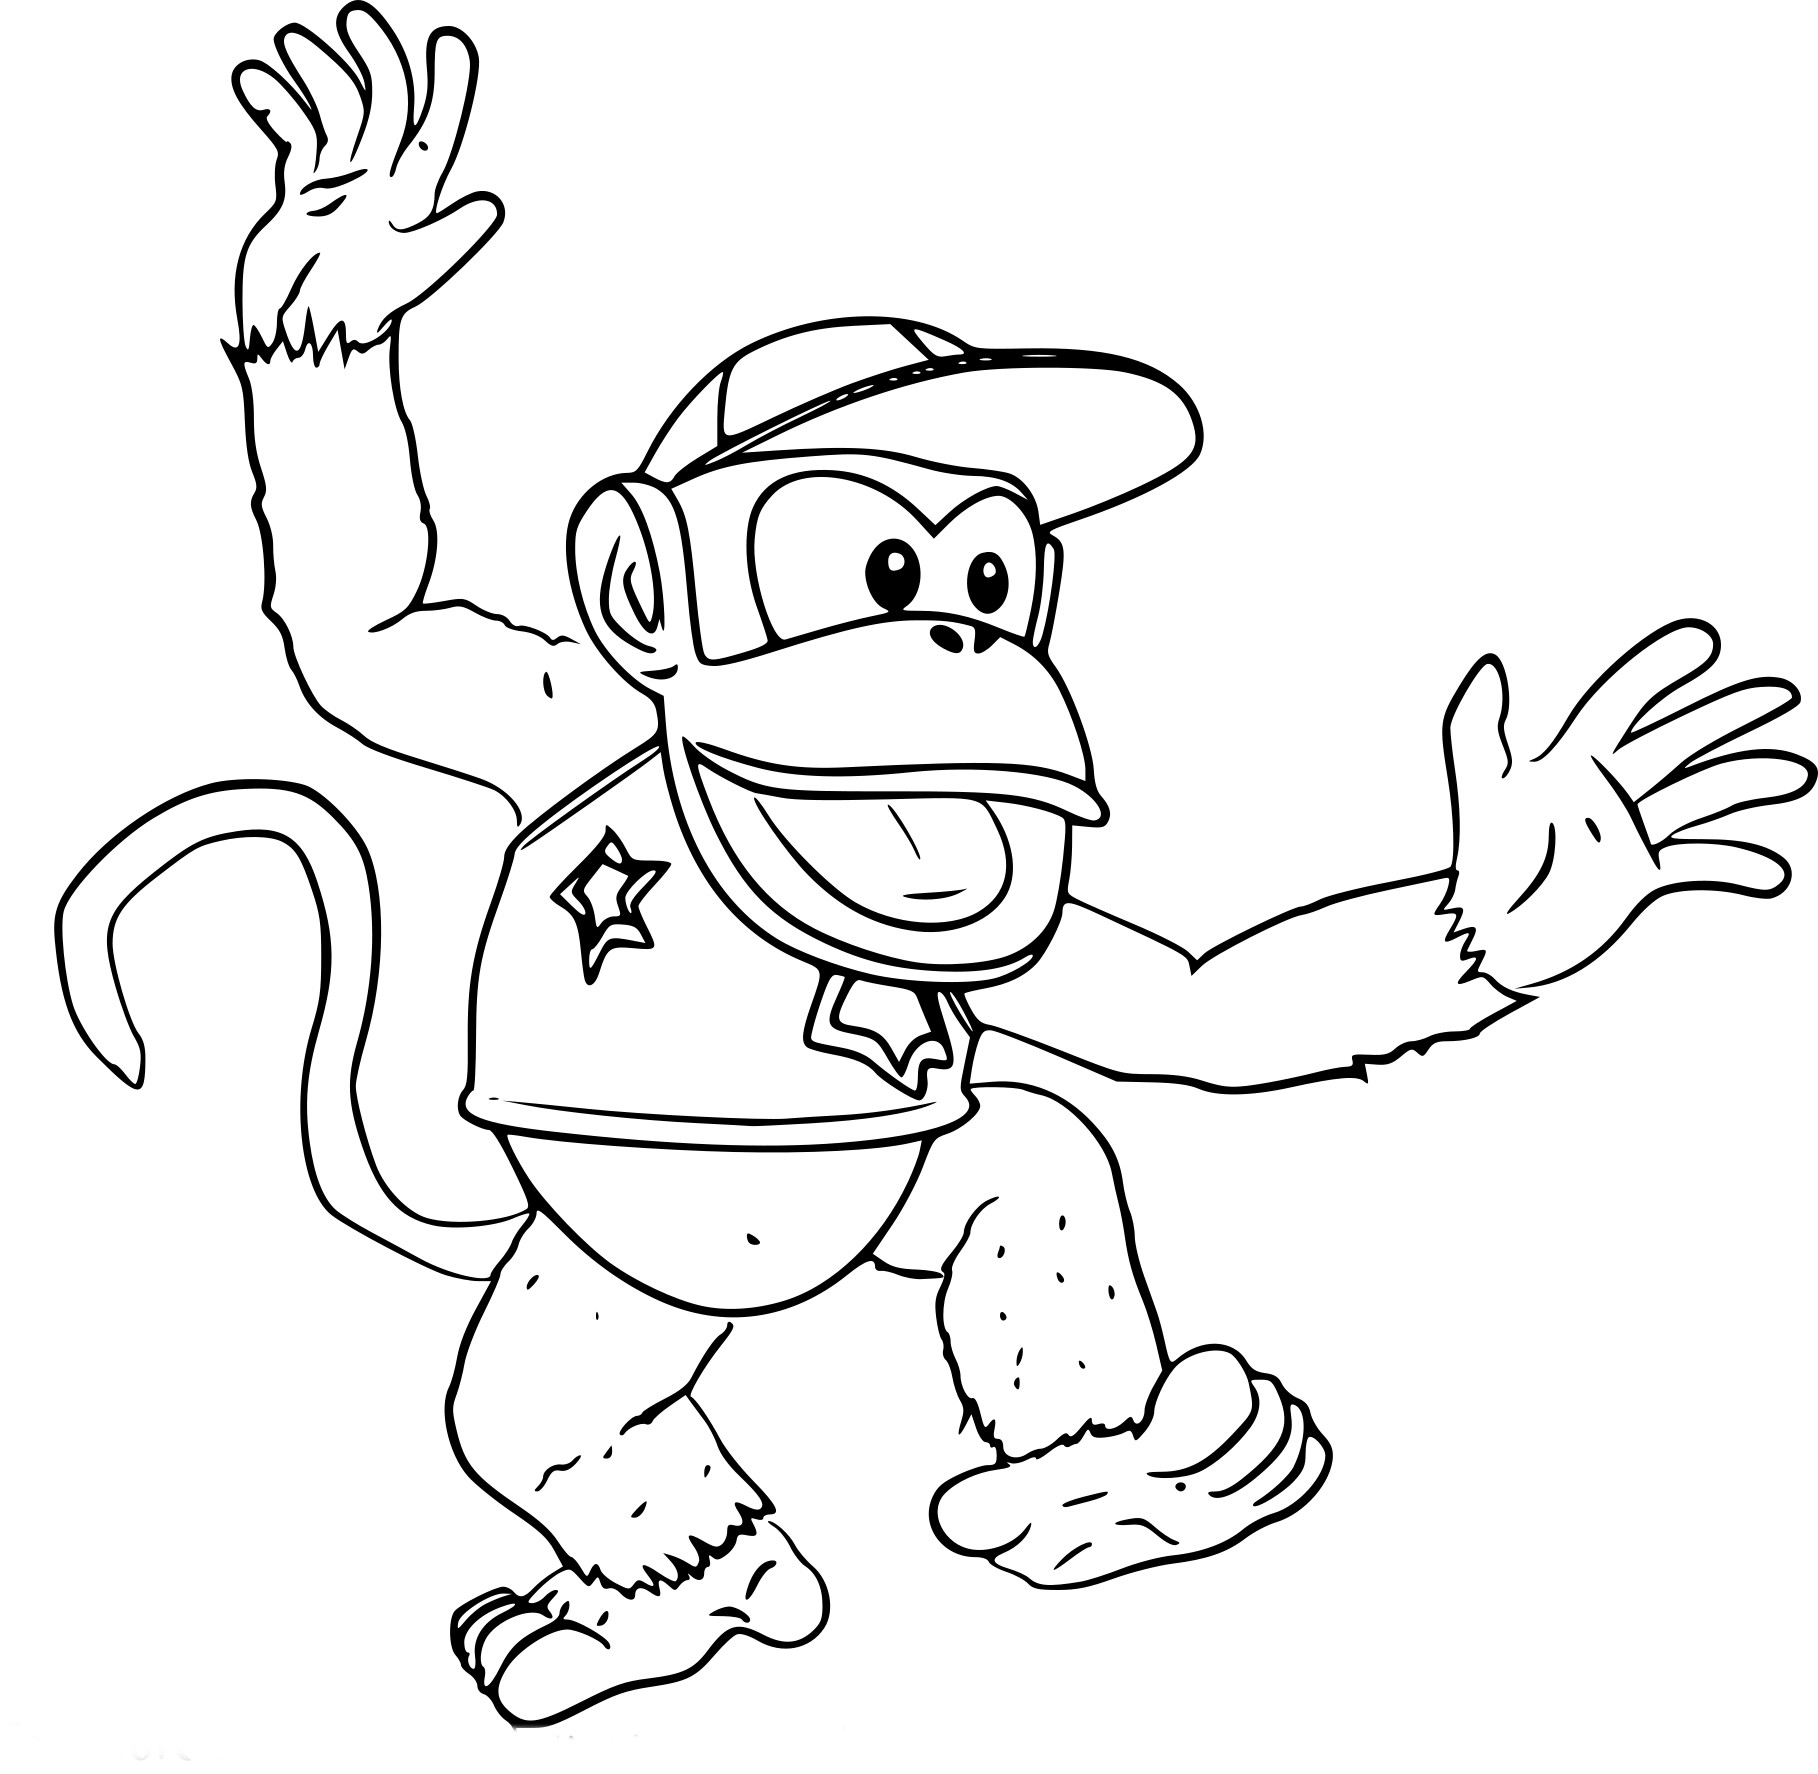 super smash bros coloring pages - coloriage diddy kong